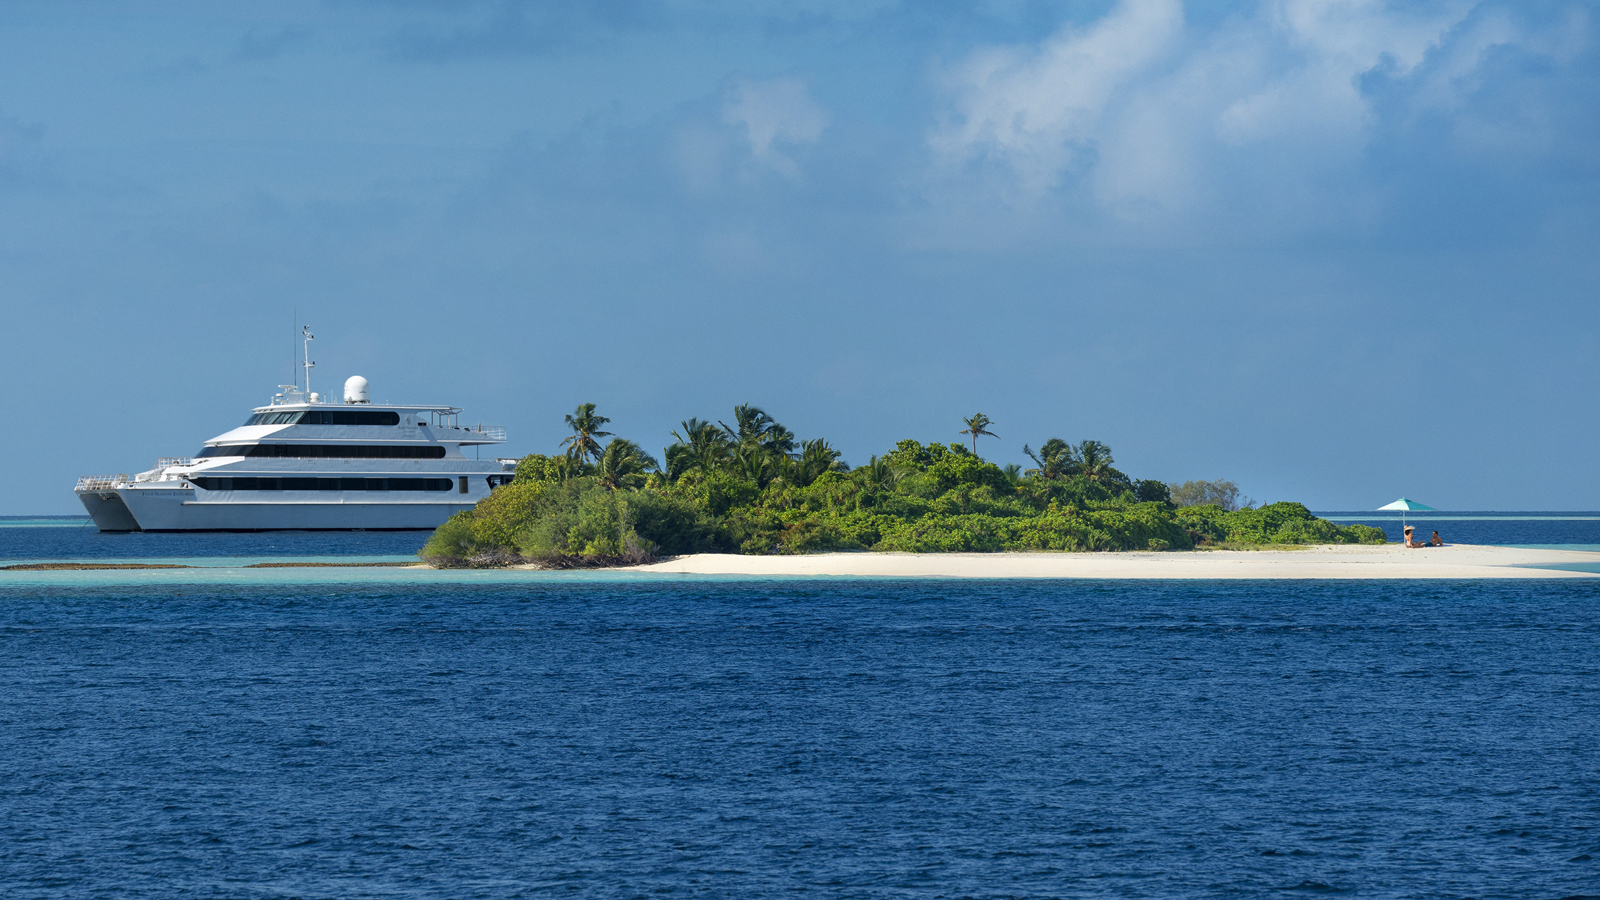 Four Seasons Explorer, Five star luxury yacht / cruise, Four Seasons Resort Maldives at Kuda Huraa